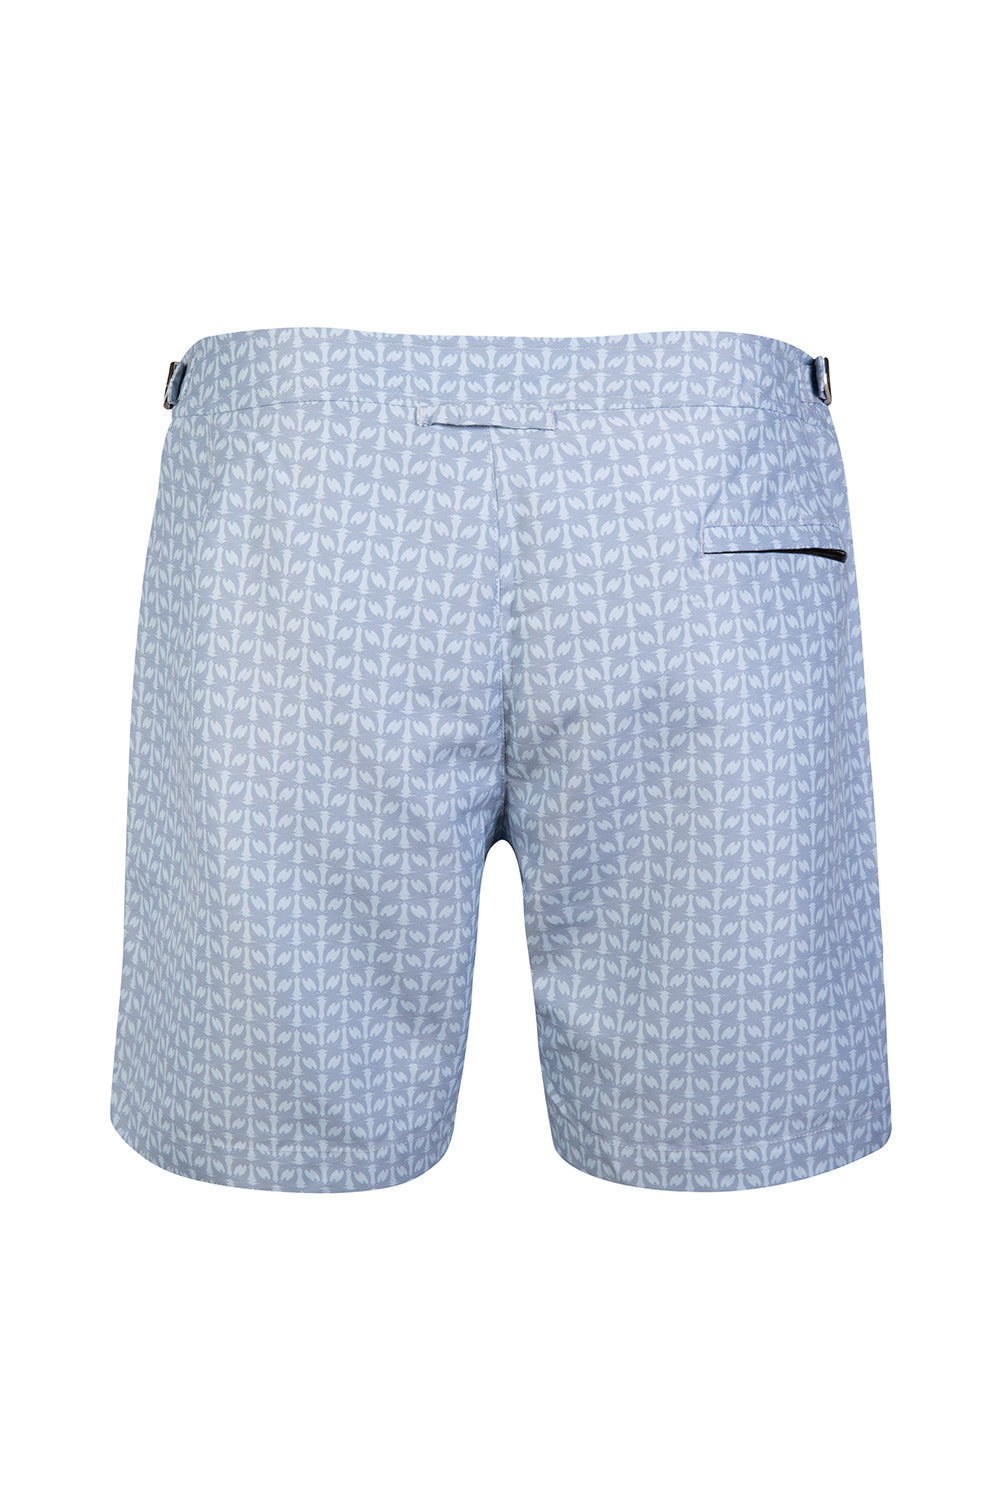 The Jumping Grey Dolphin Tailored Swim Short